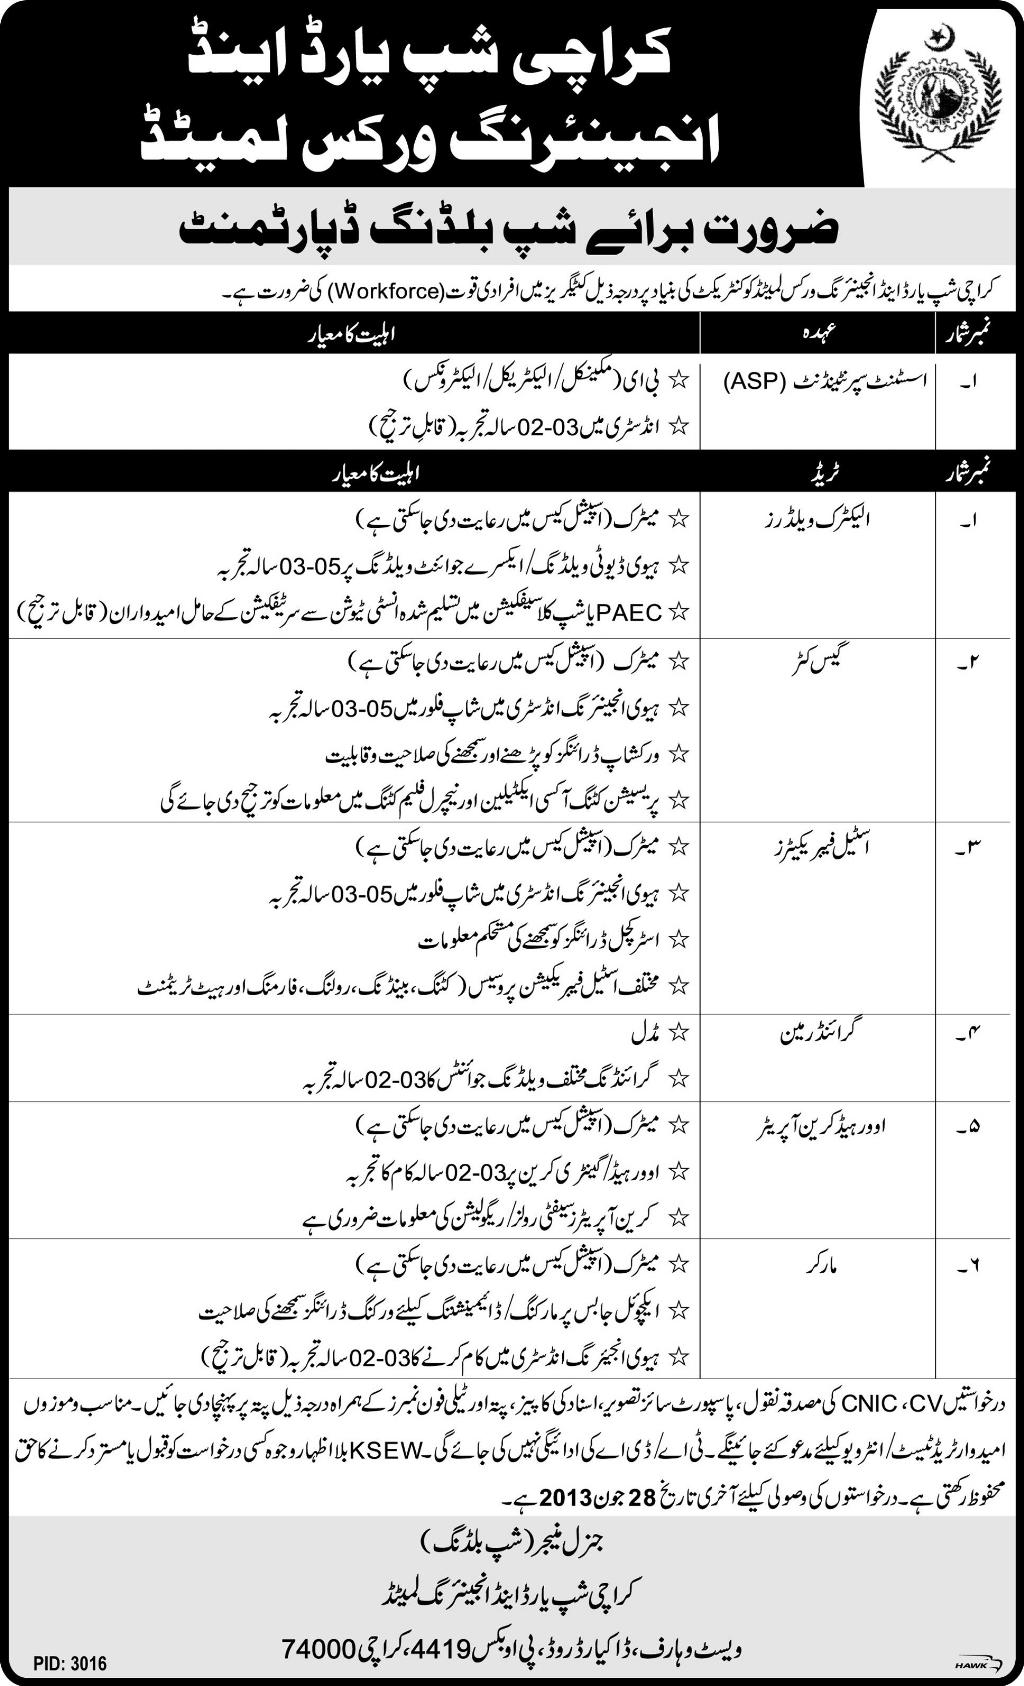 jobs in shipyard karachi Jobs in Karachi Shipyard & Engineering Works Karachi